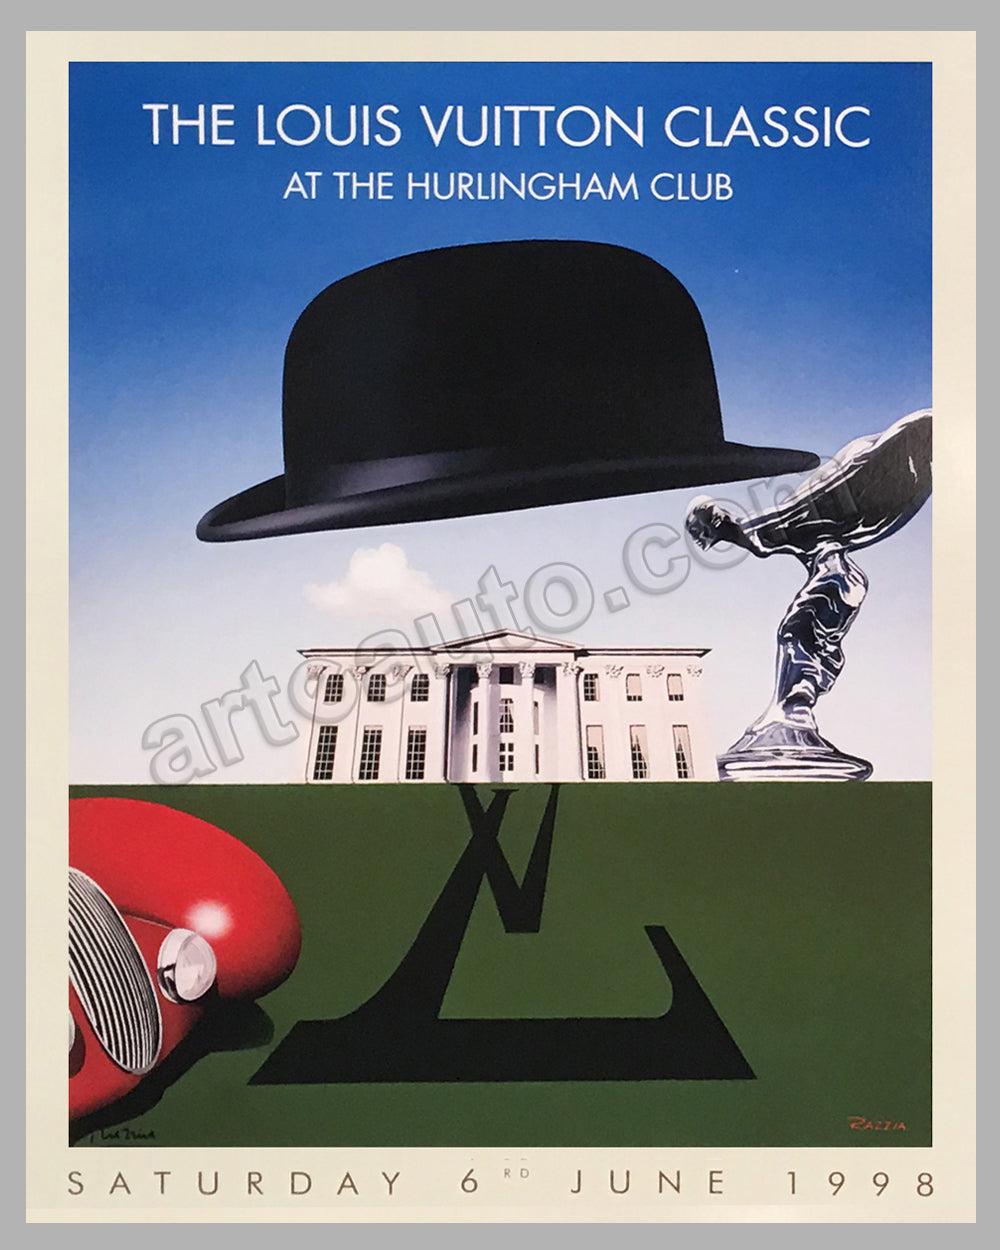 Louis Vuitton Classic at the Hurlingham Club 1998 large poster by Razzia